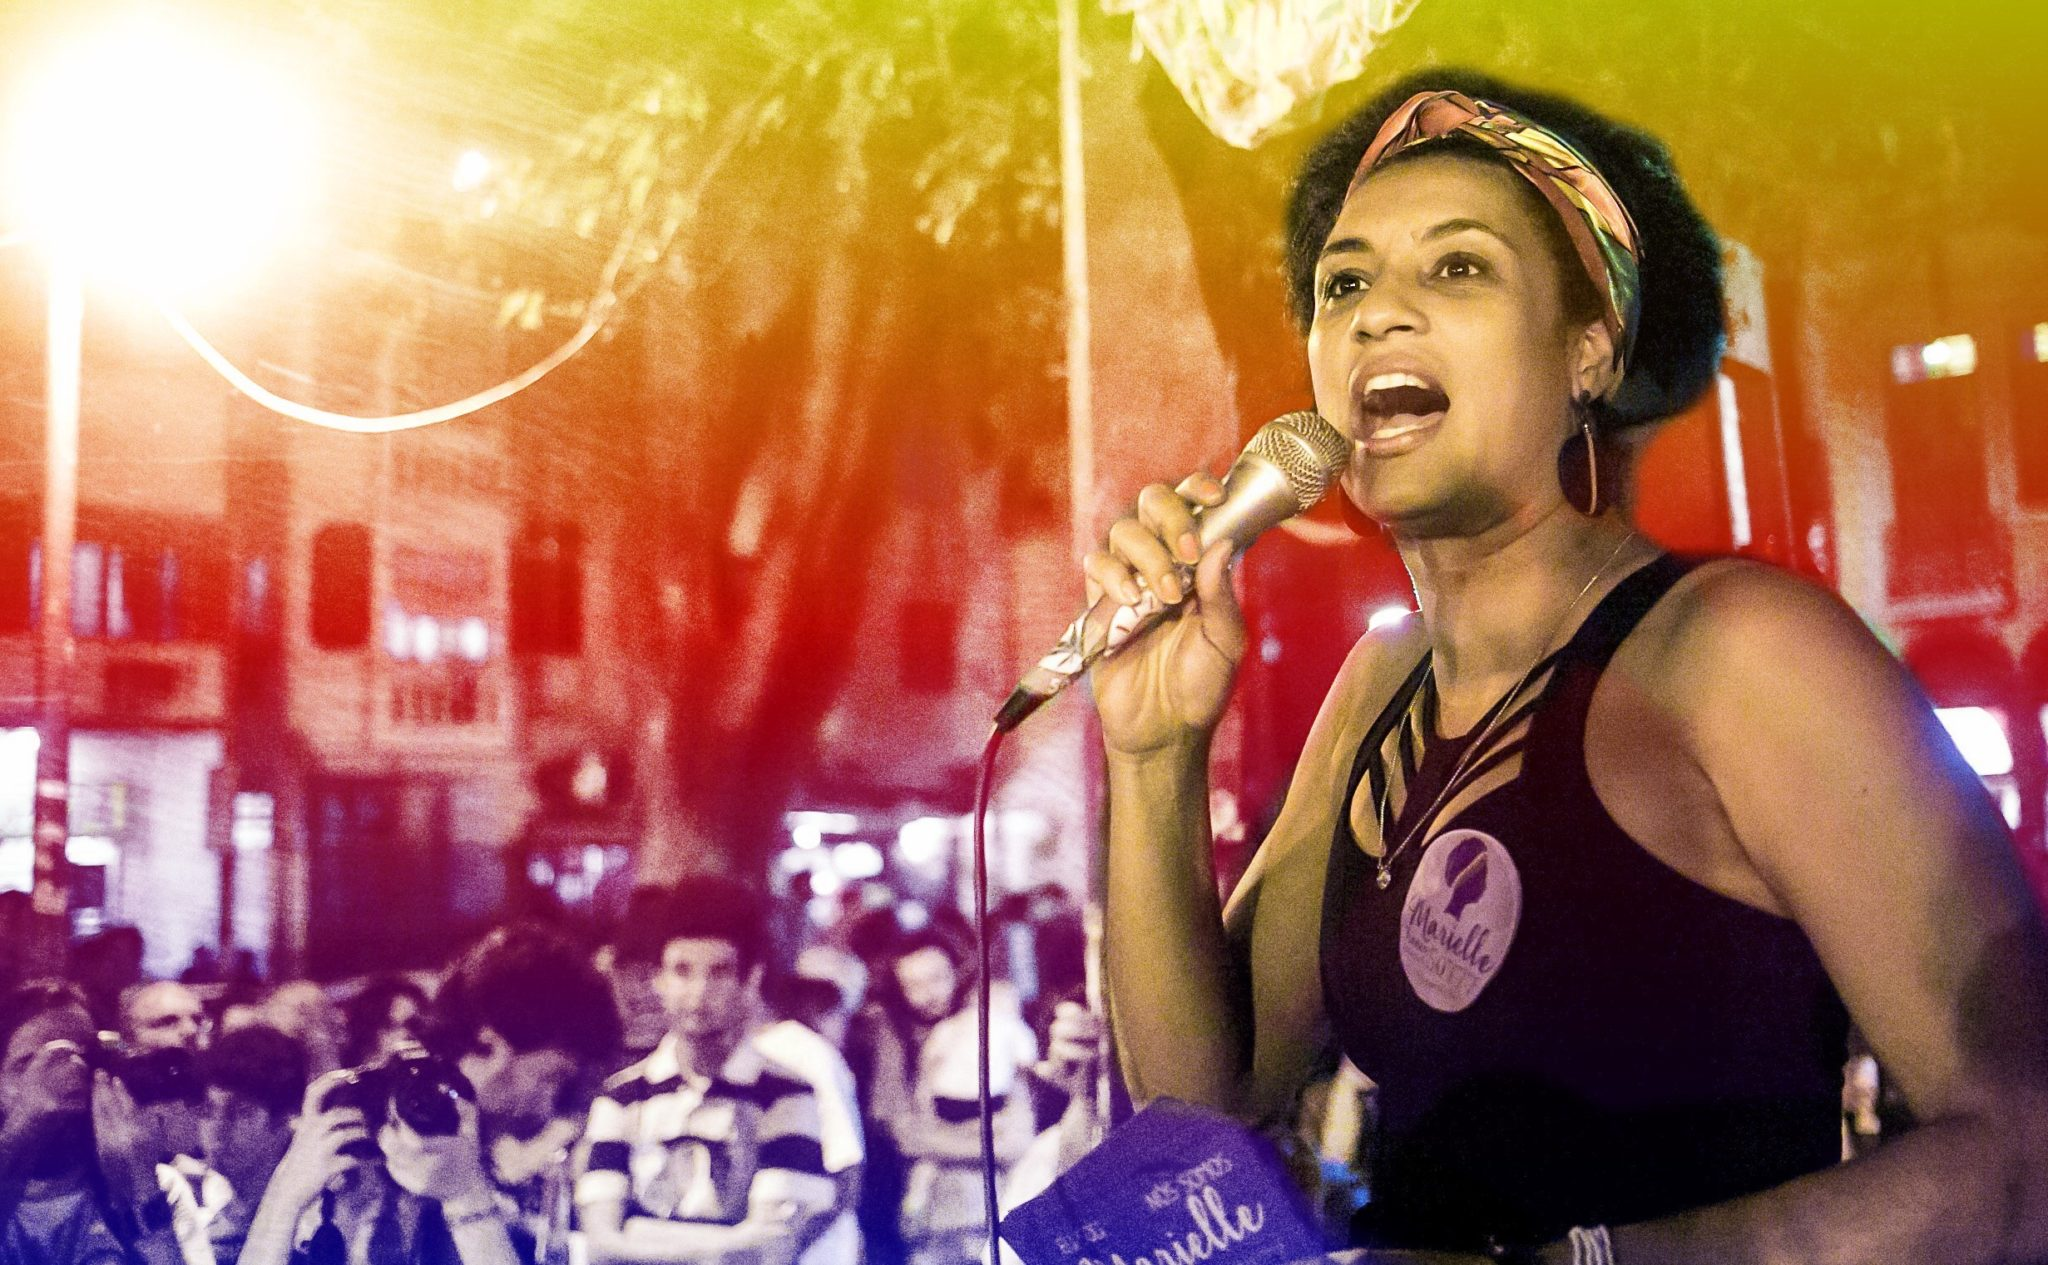 Brazilian activist Marielle Franco speaking at a rally